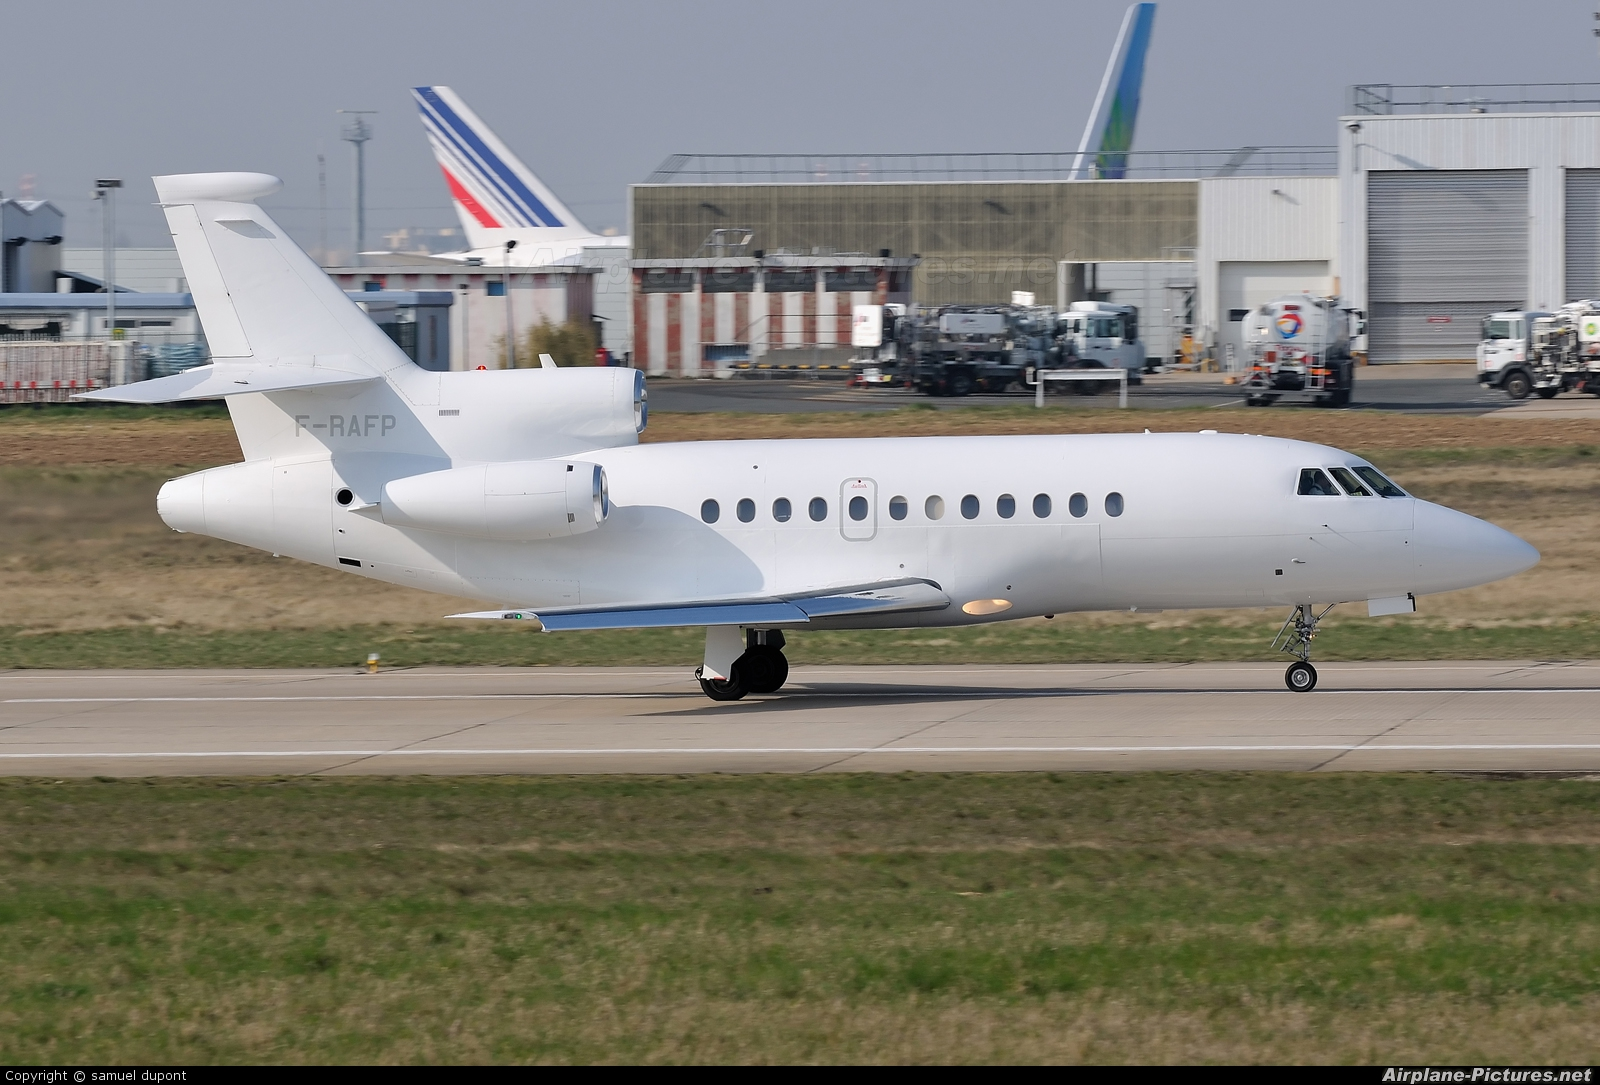 France - Air Force F-RAFP aircraft at Paris - Orly